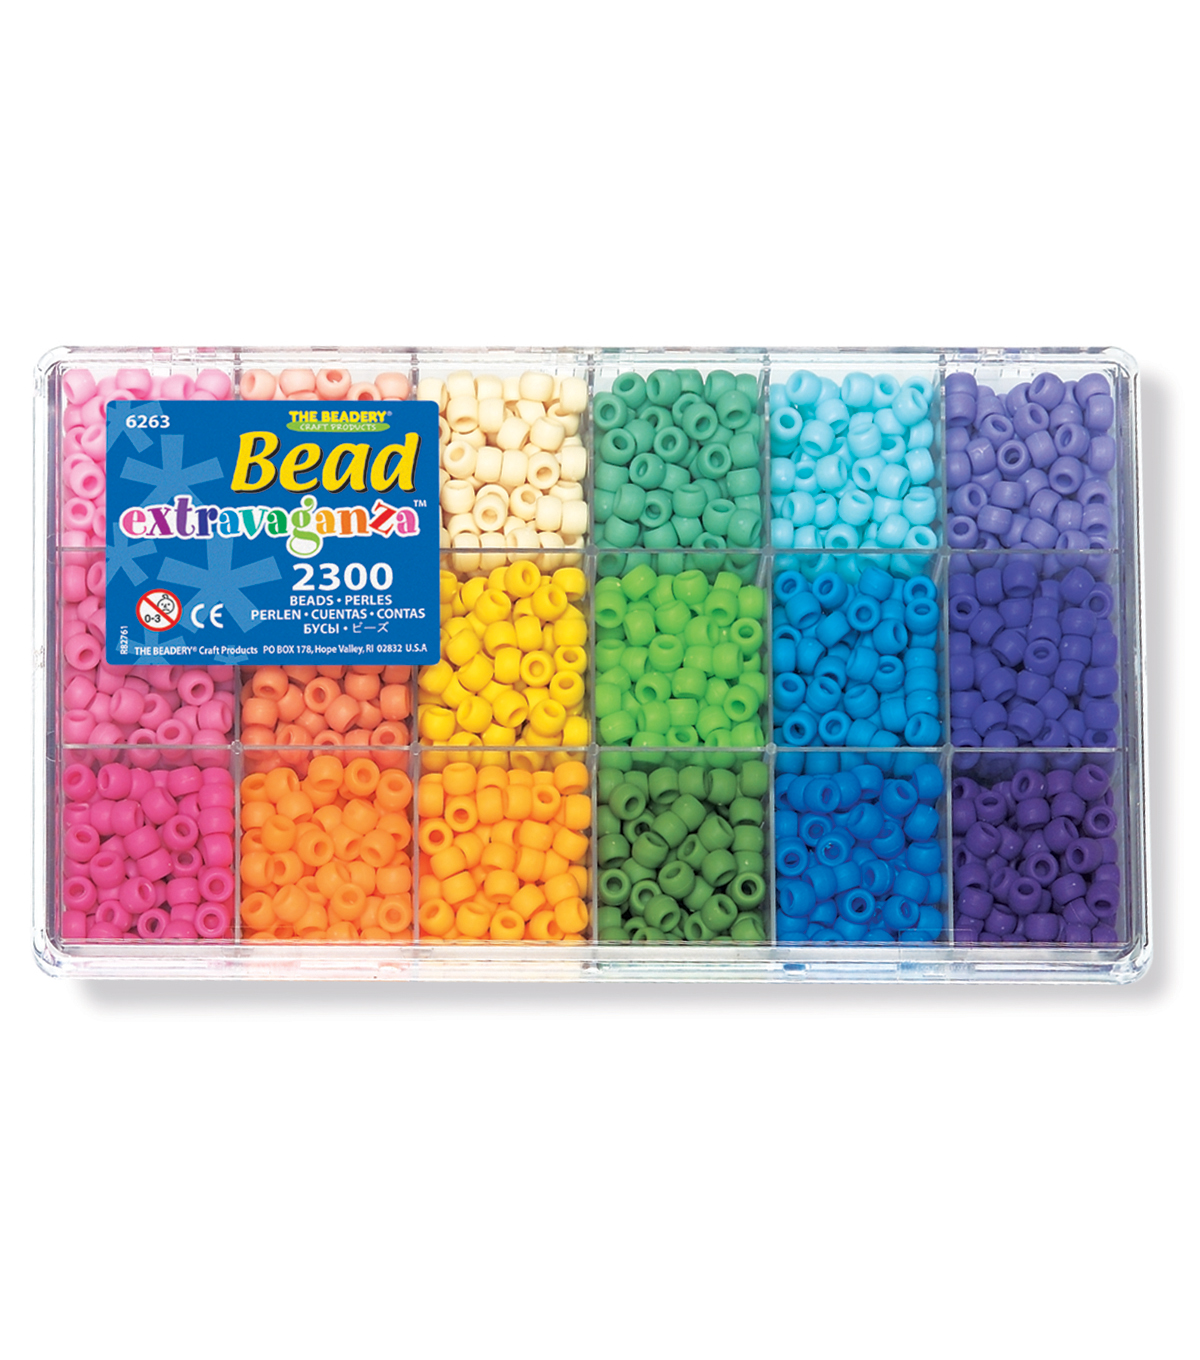 The Beadery Bead Extravaganza 2300 pk Pony Bead Box-Soft Rainbow  2995243ea4